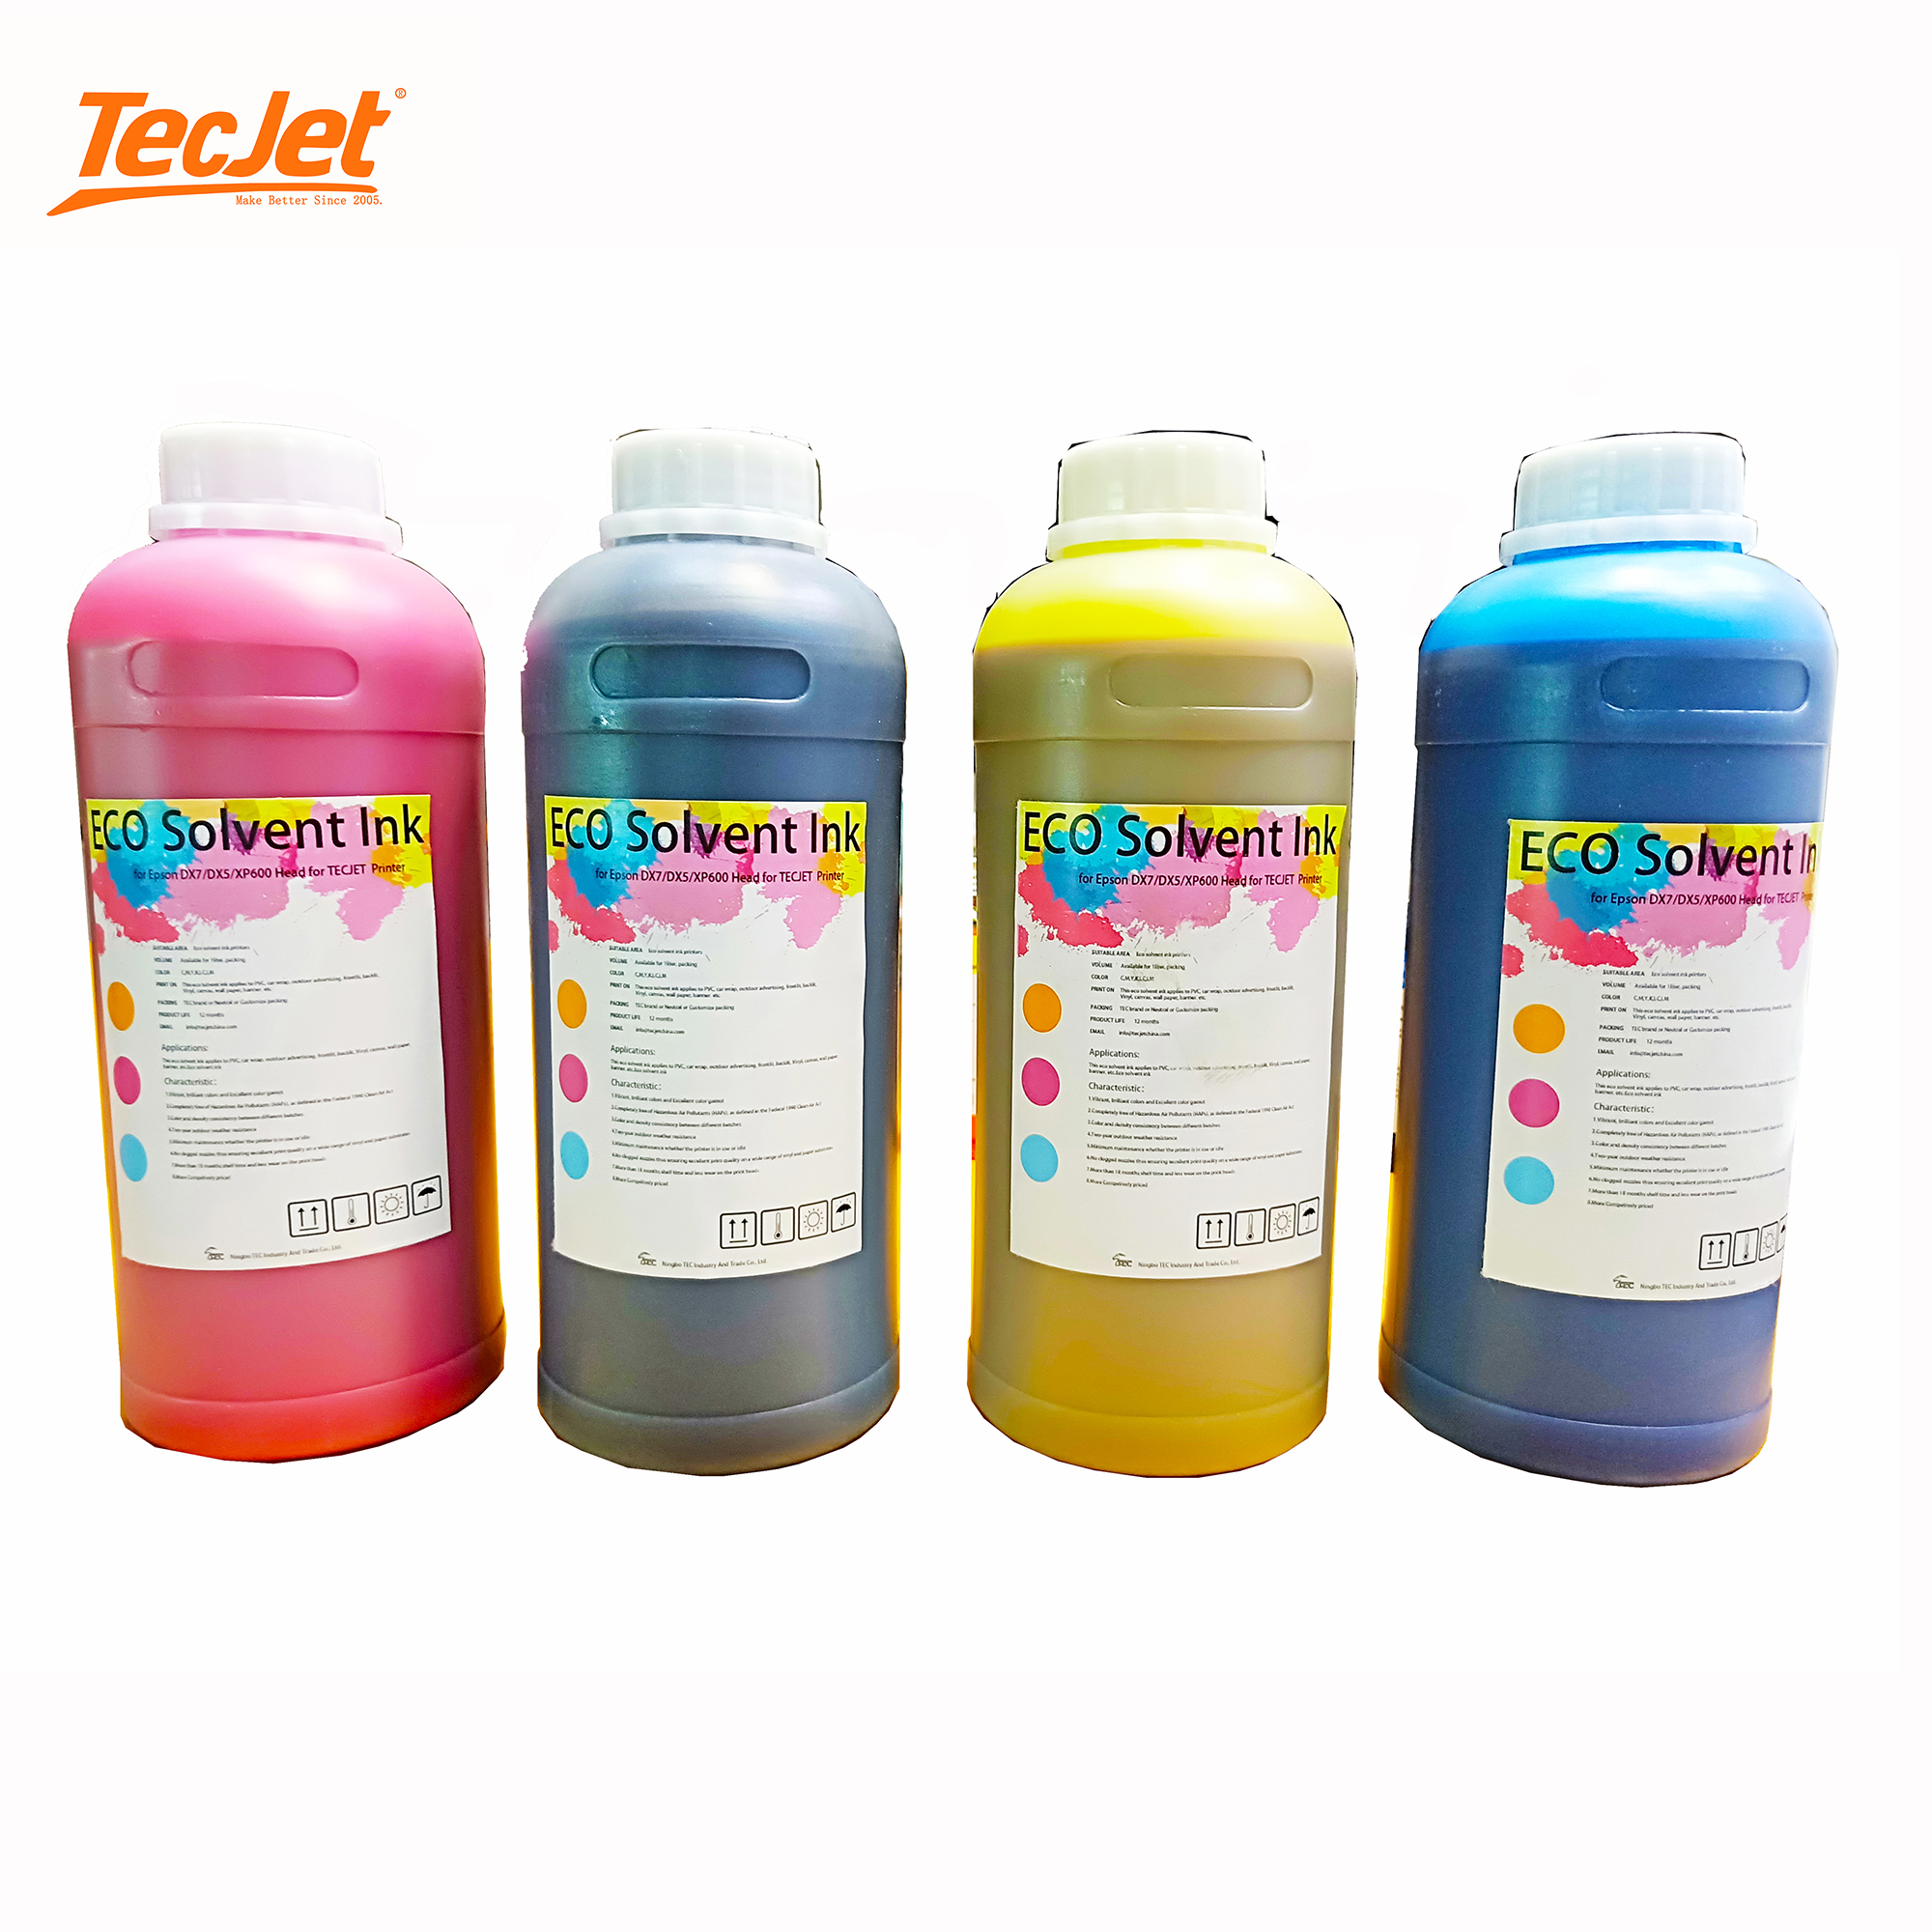 TECJET durable digital printing eco solvent ink for DX7/DX5/XP600 printhead for eco solvent printers